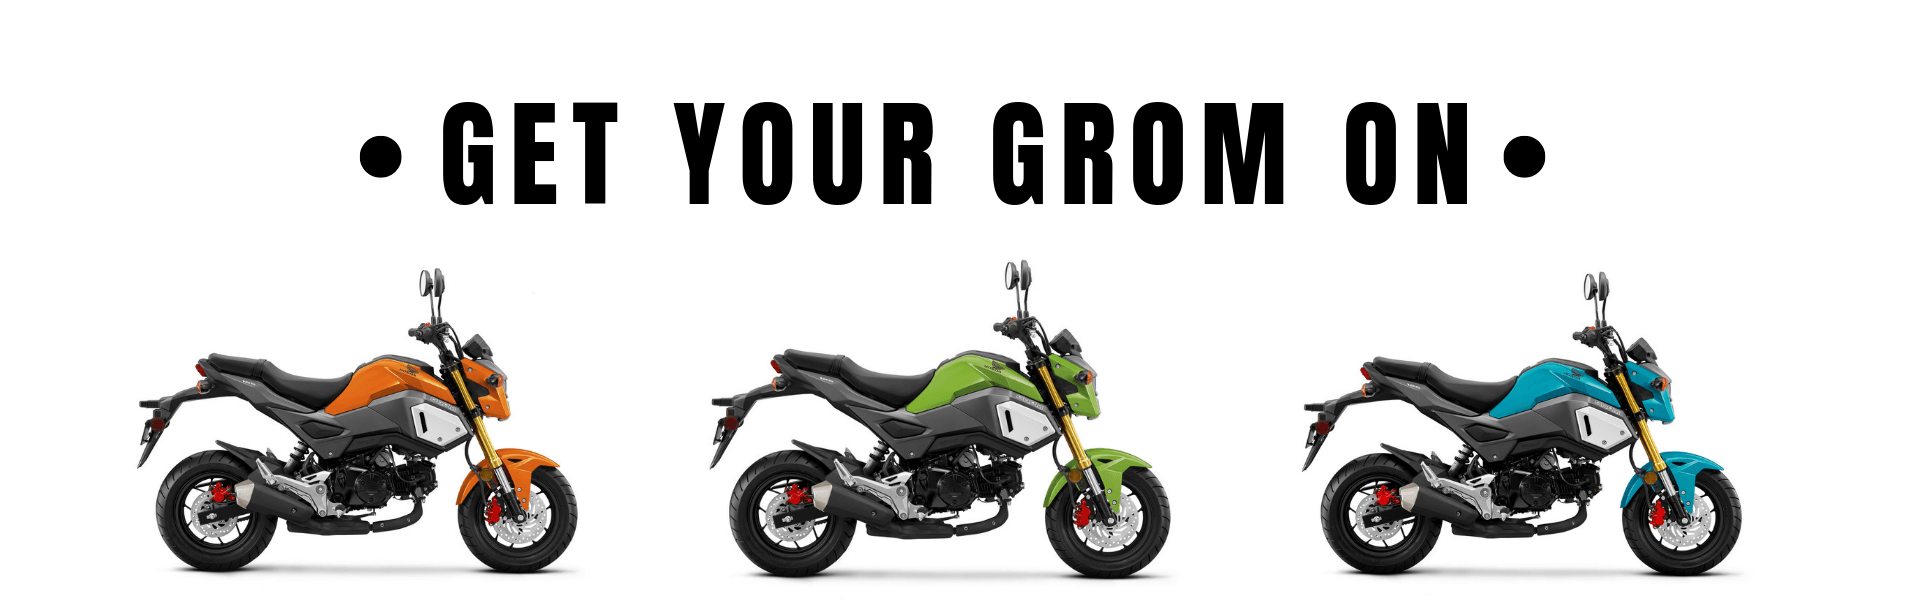 Grom ON